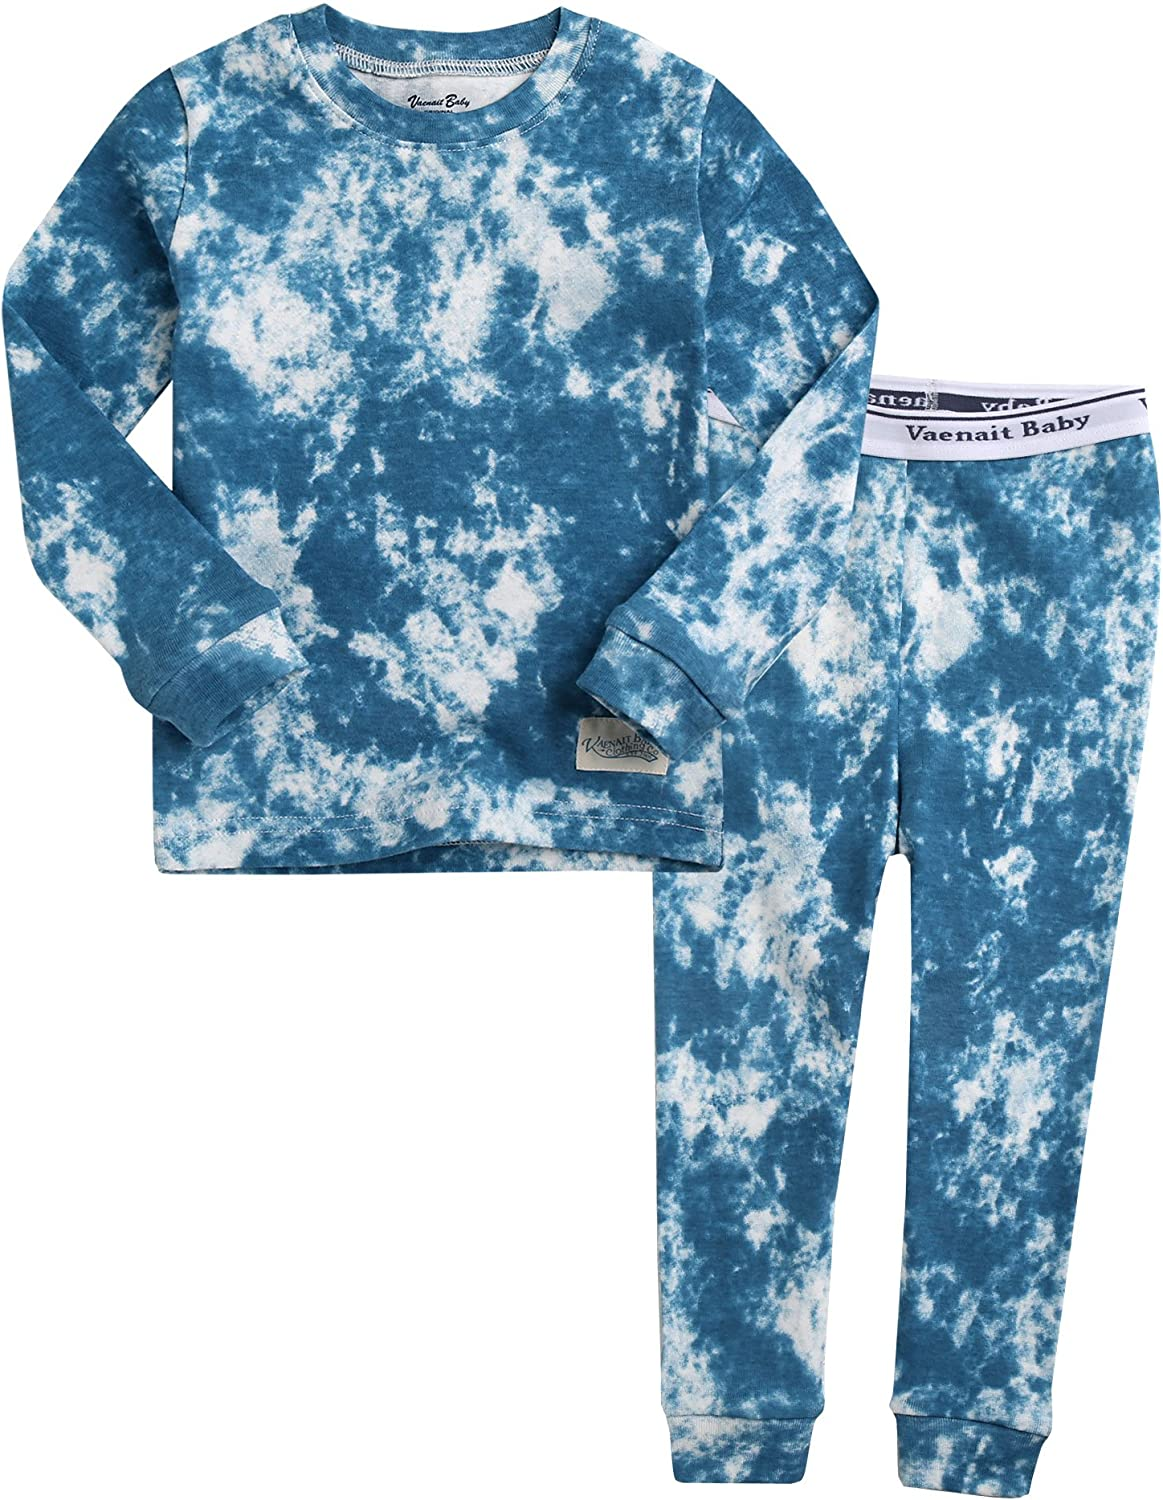 VAENAIT BABY 12M-12 Toddler Kids Boys Girls 100% Cotton Marbling Sung Fit Sleepwear Pajamas 2pcs Pjs Set Cloud